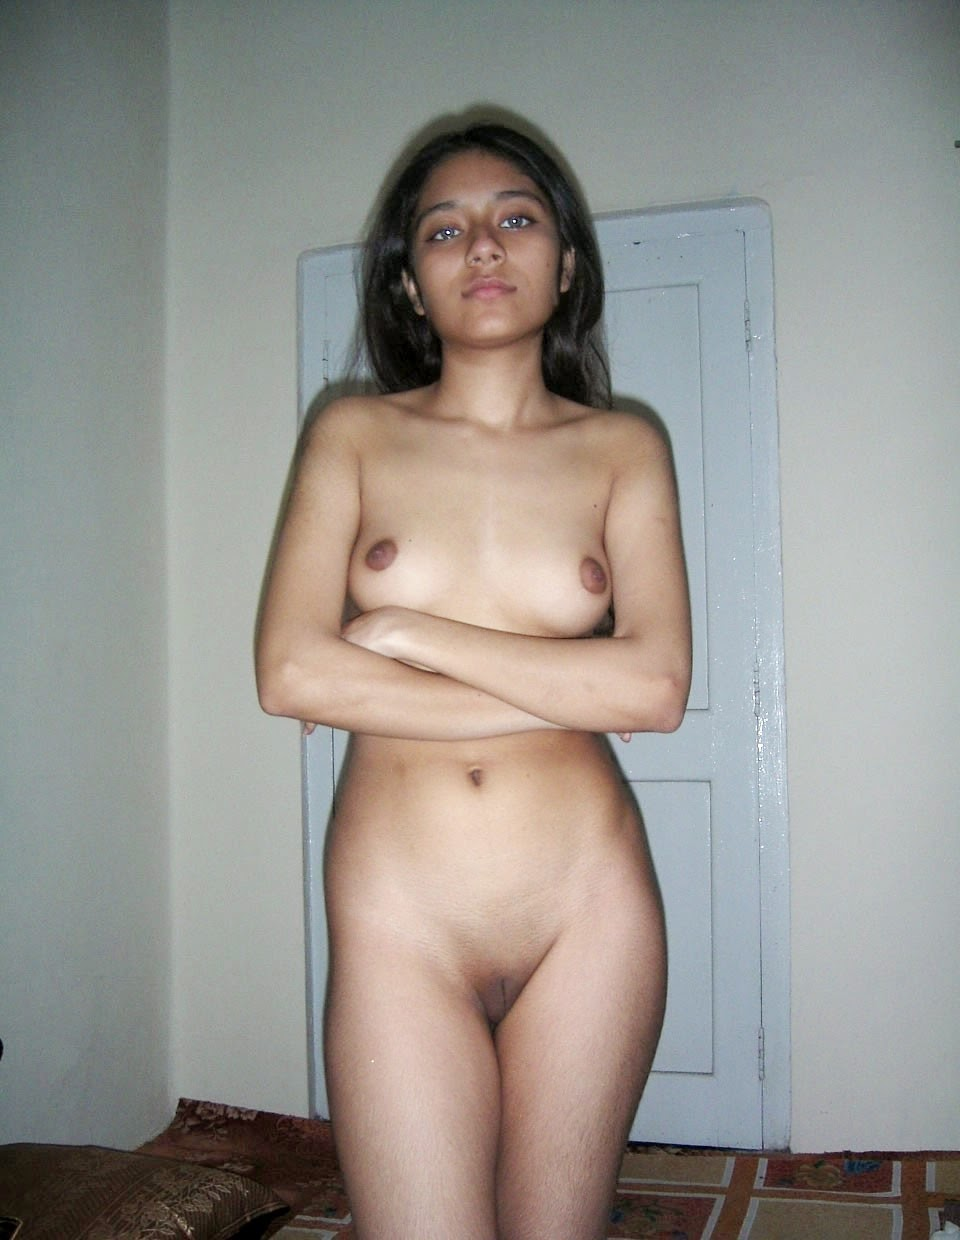 Old mature woman naked